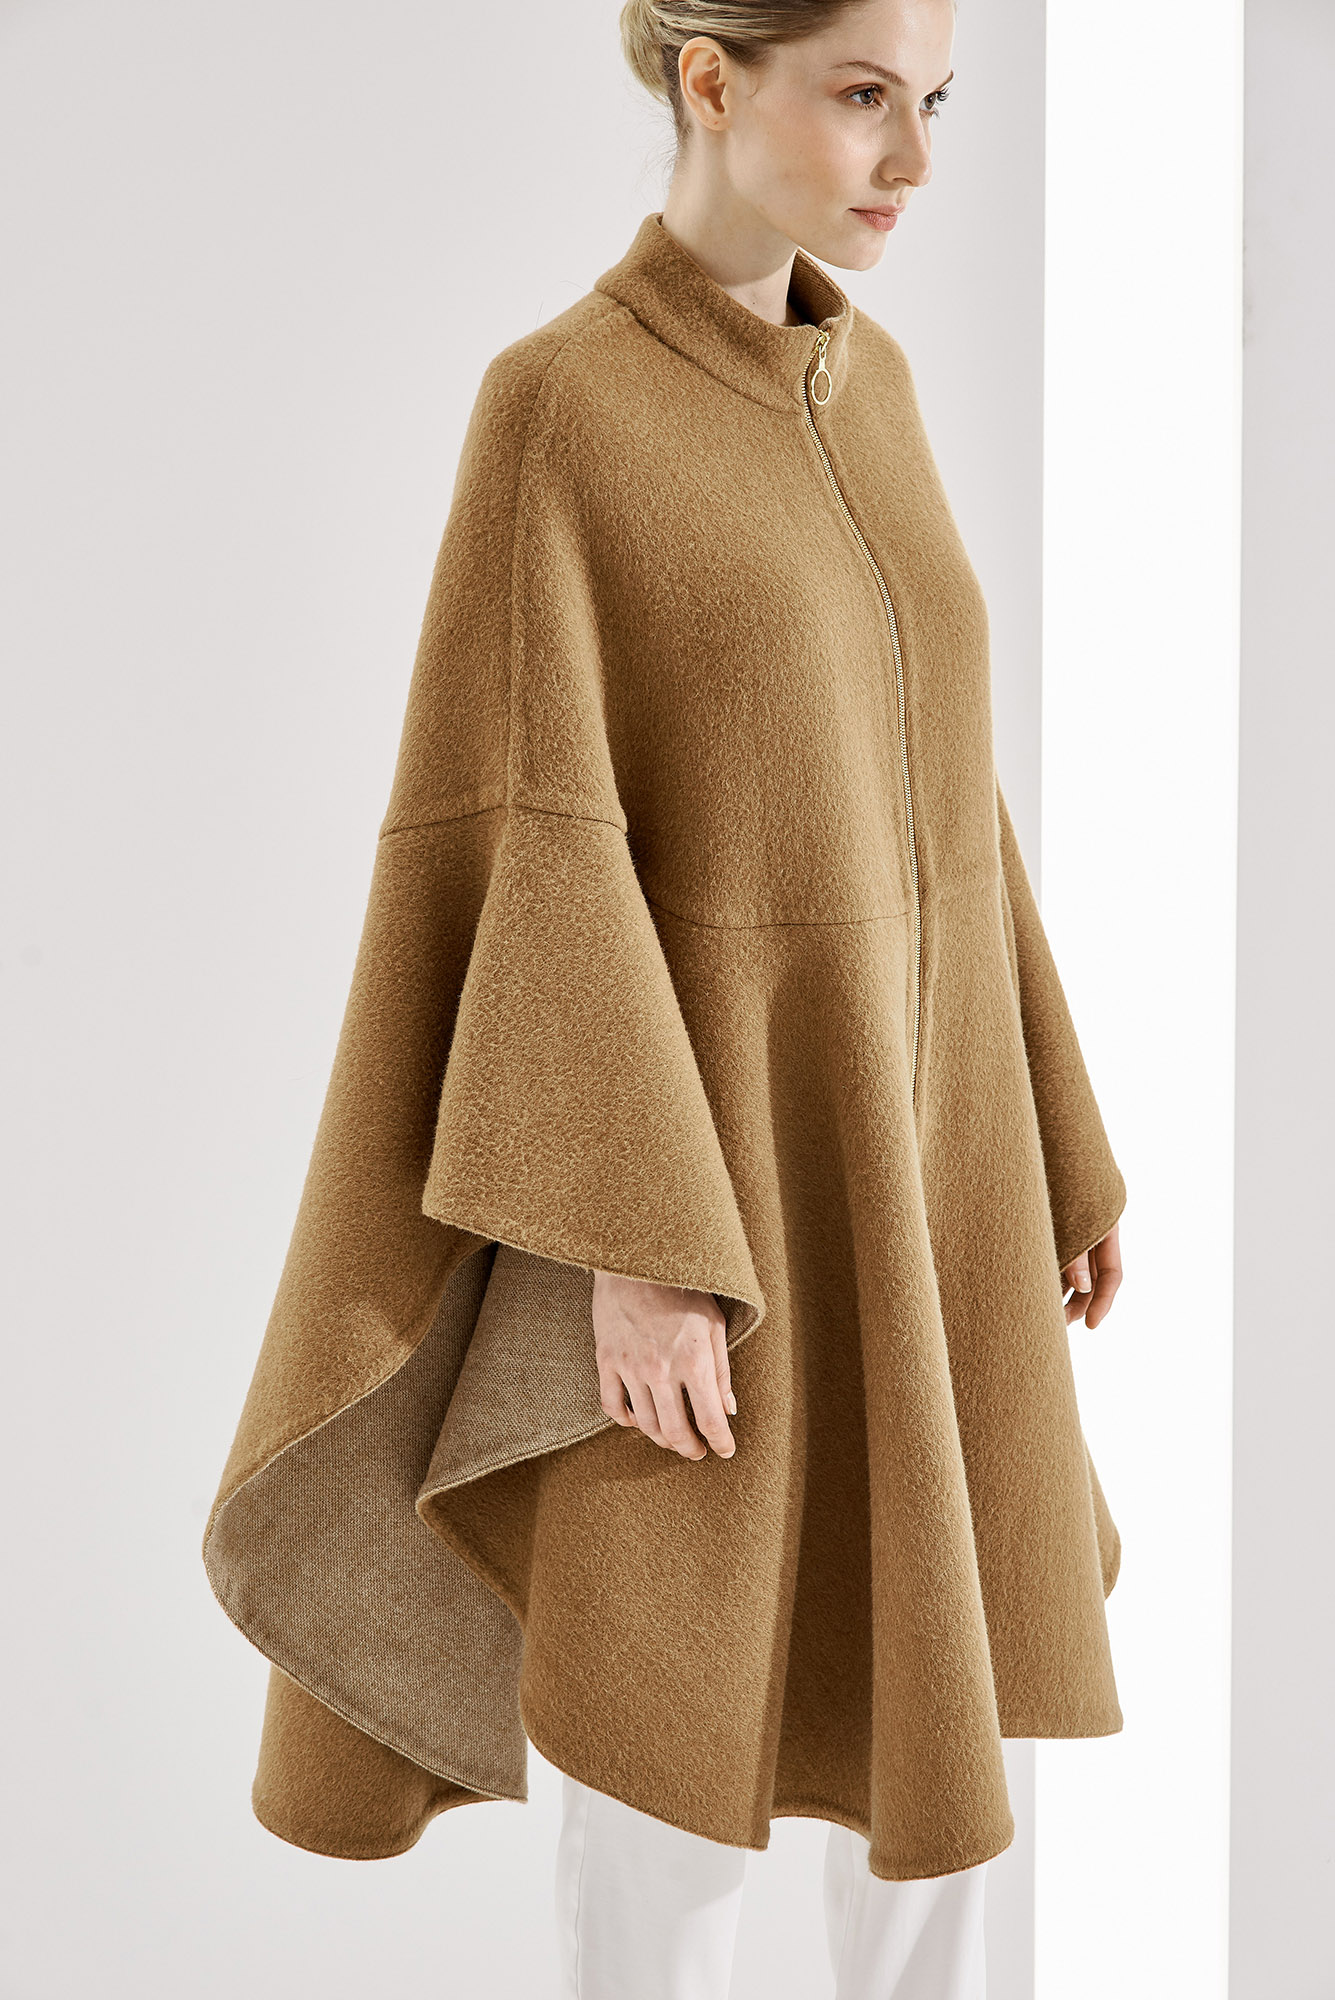 CAPE ANNA AT-421   Colors:  double face camel/textured,  donegal oatmeal/gray, ecru/sand  Sizes: XS, S, M, L